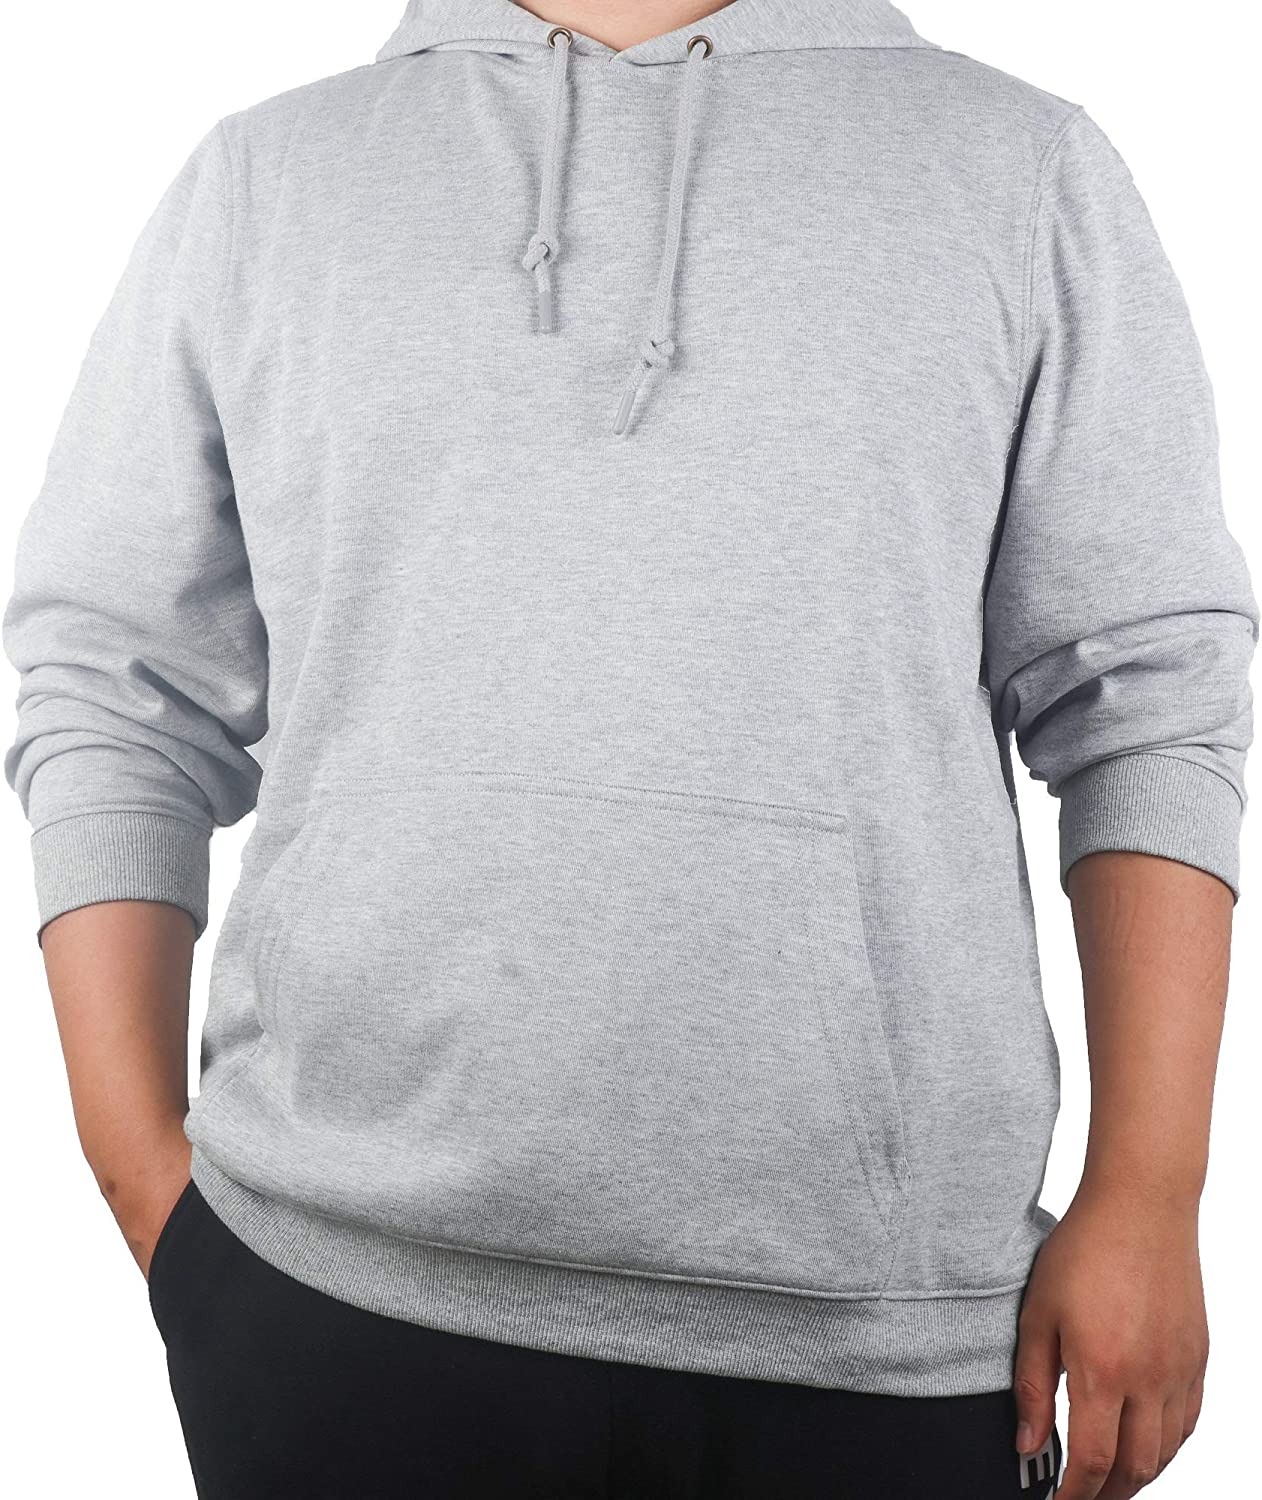 UrGarding EMF shielding pullover hoodie, Double layer of silver fabric for double radiation protection